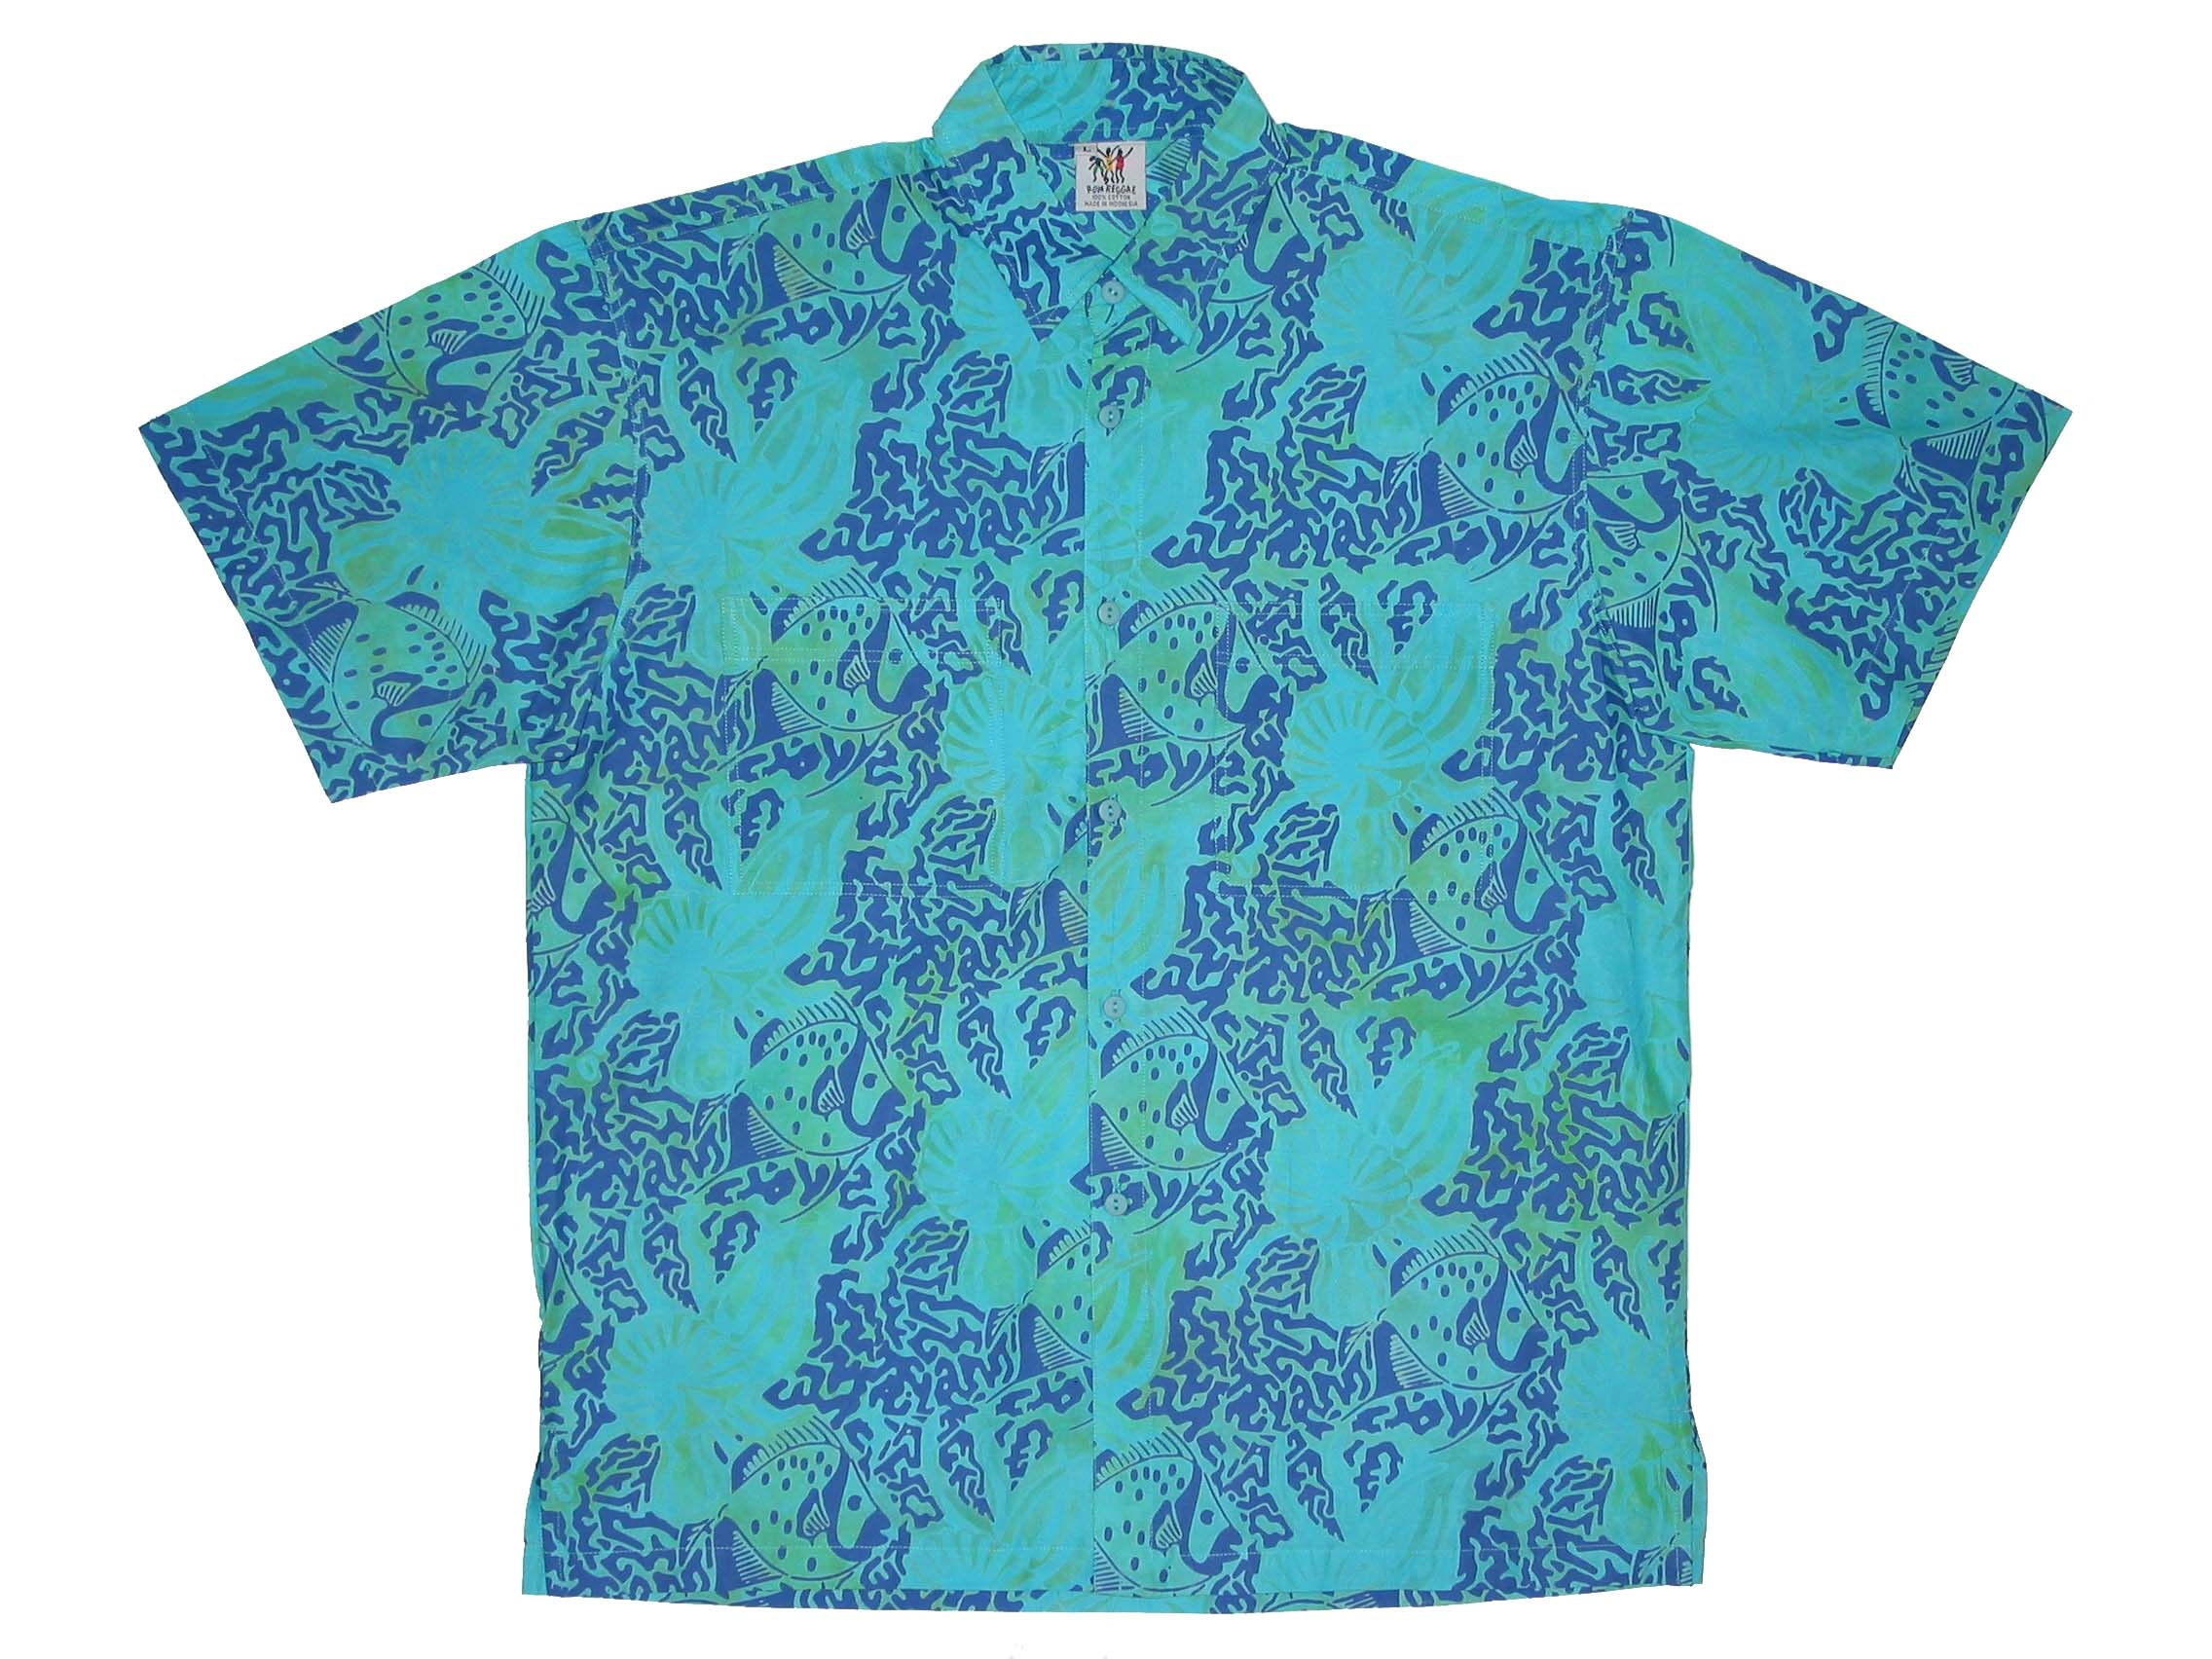 Cabana Shirt - Dive In Theater